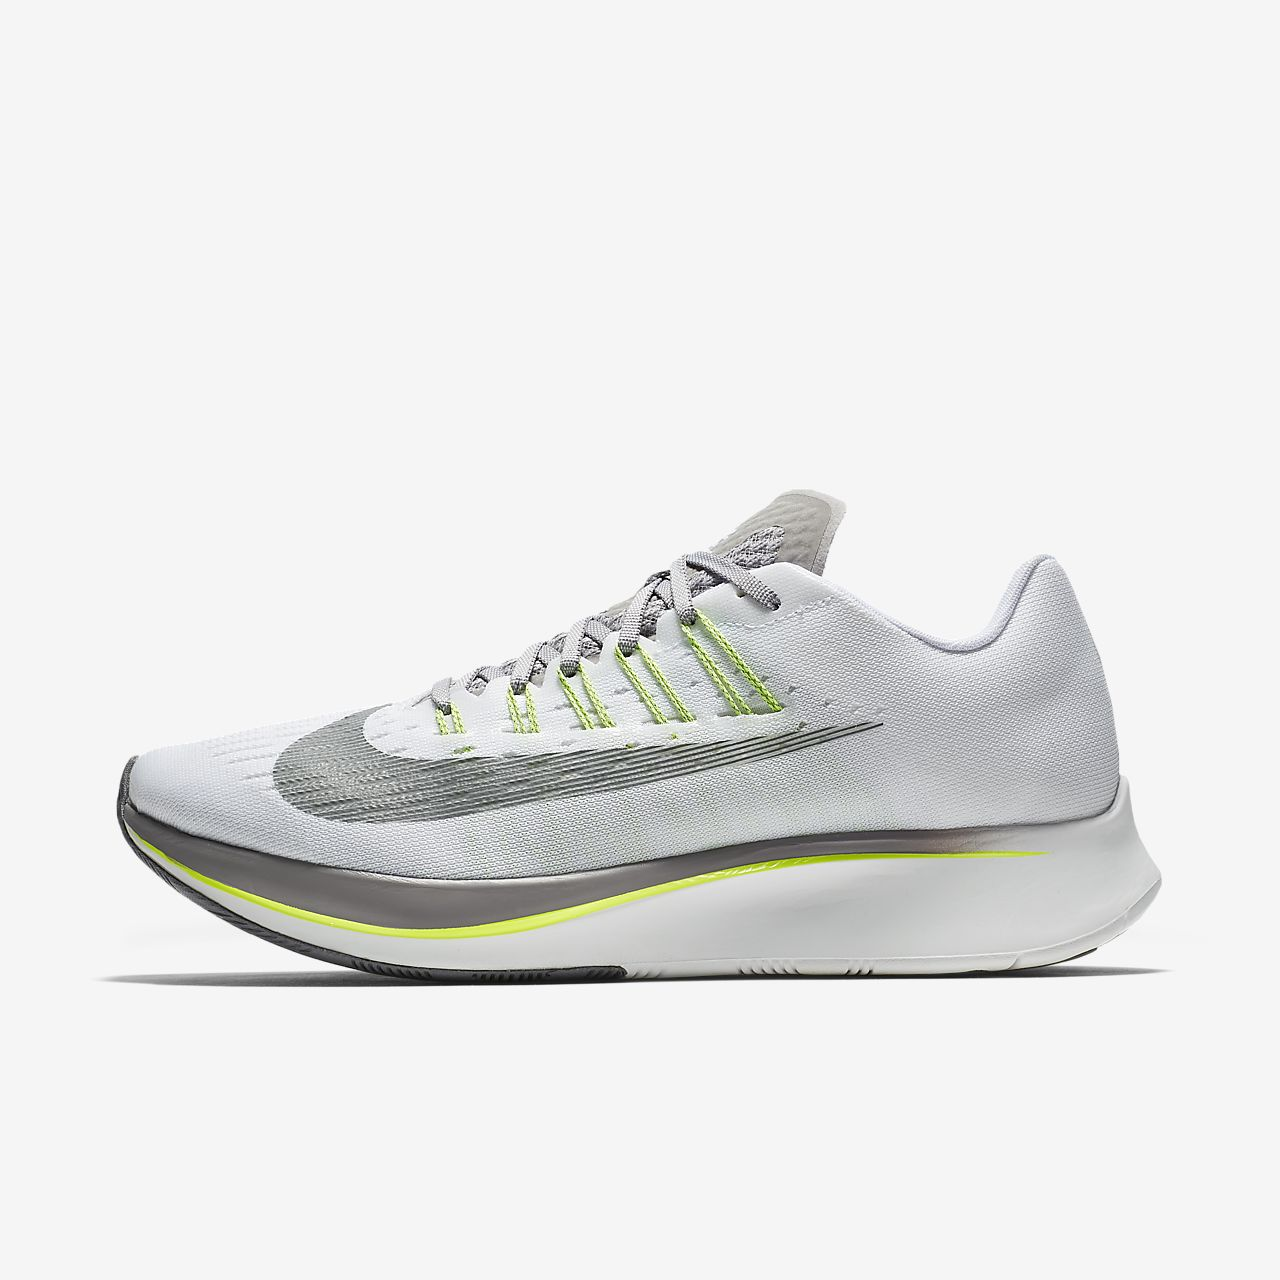 info for 33f4d 37bfd Men s Running Shoe. Nike Zoom Fly